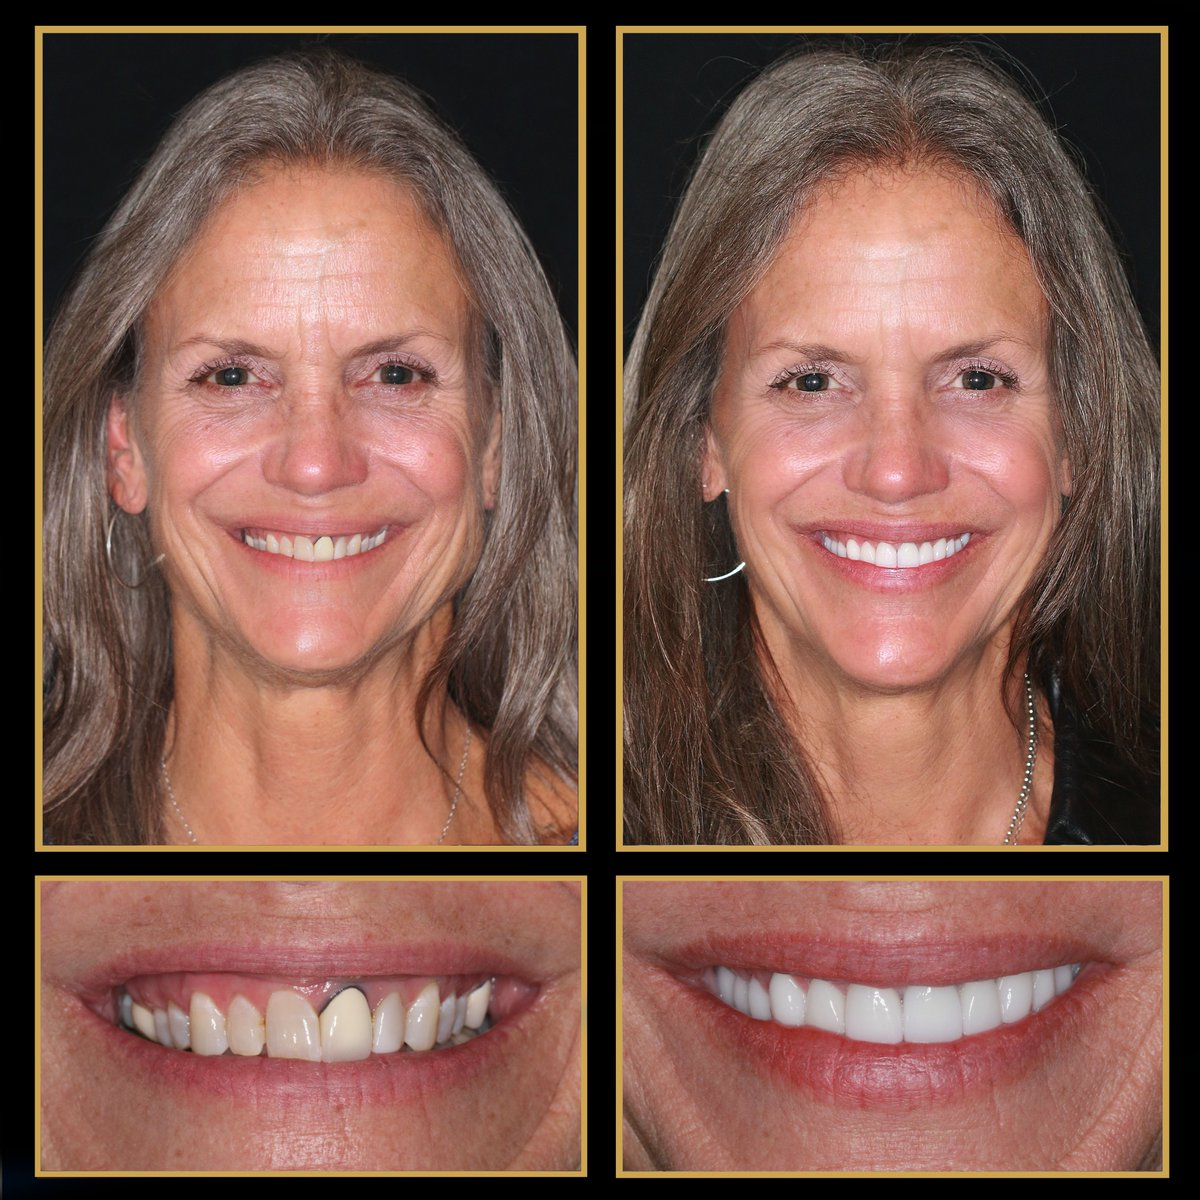 It's simply amazing what an Austin smile makeover can do in just two visits! http://TheCosmeticDentistsOfAustin.com   #CosmeticDentist #CosmeticDentistry #SmileMakeover #Veneers #VeneersCost #VeneersAustin #ATX #ReconstructiveDentistry #DentalImplants #Smile #TransformationTuesdaypic.twitter.com/uoRqQO1xAp